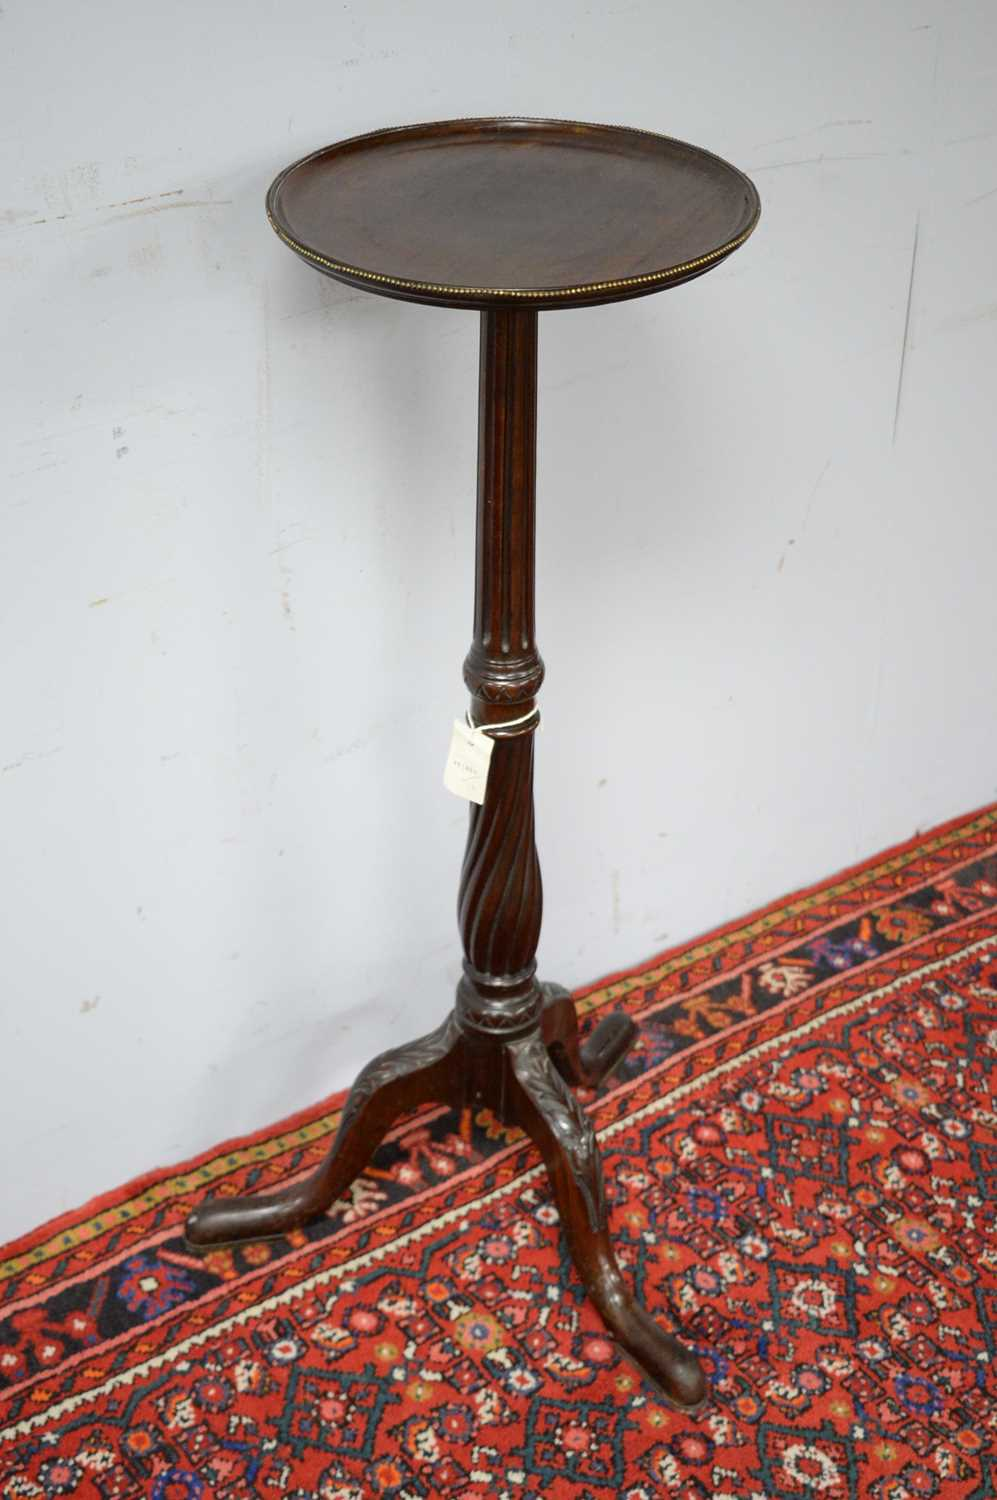 20th C George III style jardiniere stand. - Image 3 of 5